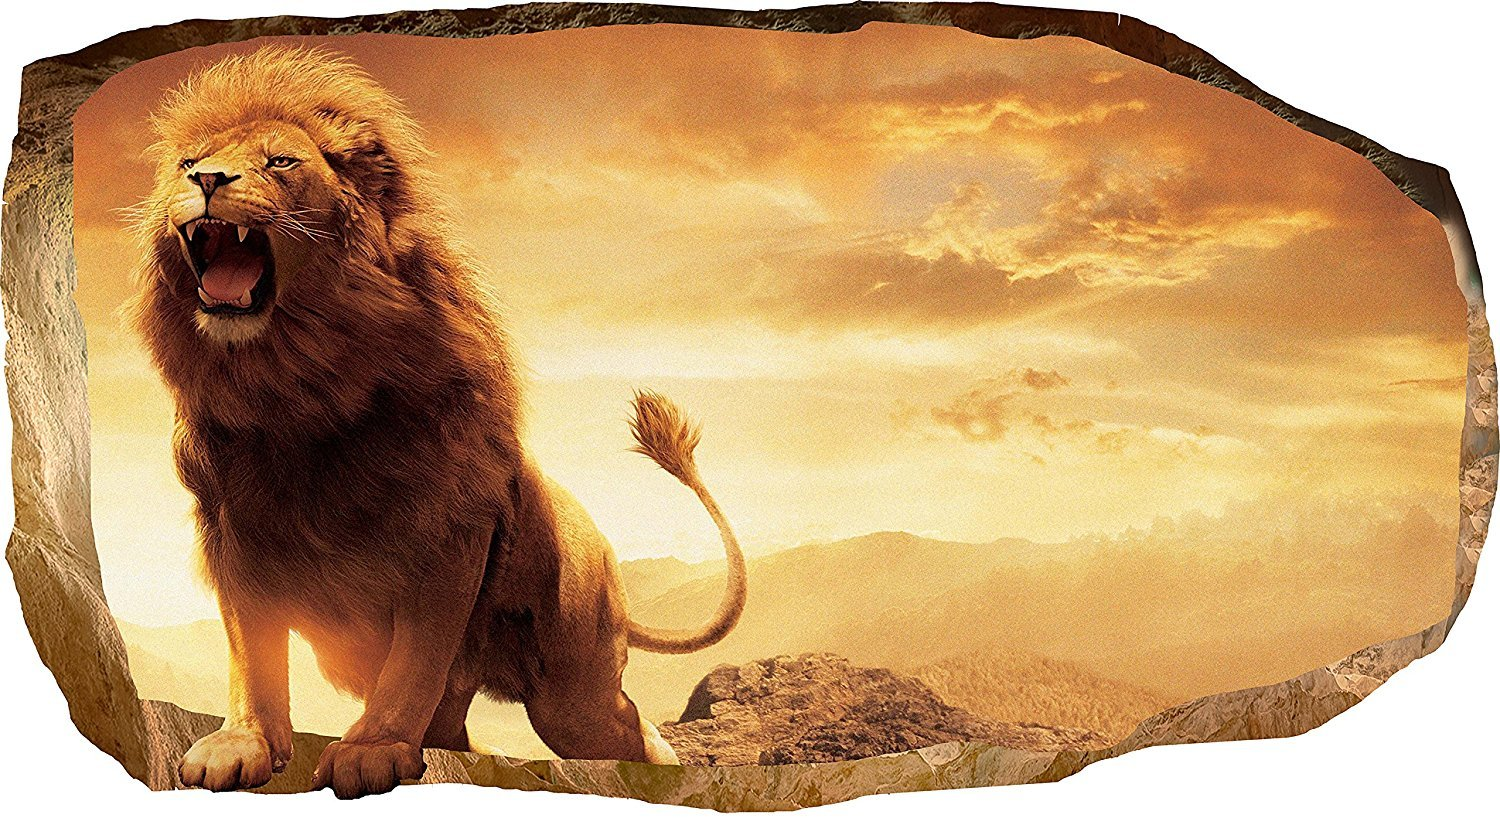 Startonight 3D Mural Wall Art Photo Decor Lion in Bedroom Amazing Dual View Surprise Large 32.28 inch By 59.06 inch Wall Mural Wallpaper for Living or Bedroom Animals Collection Wall Art